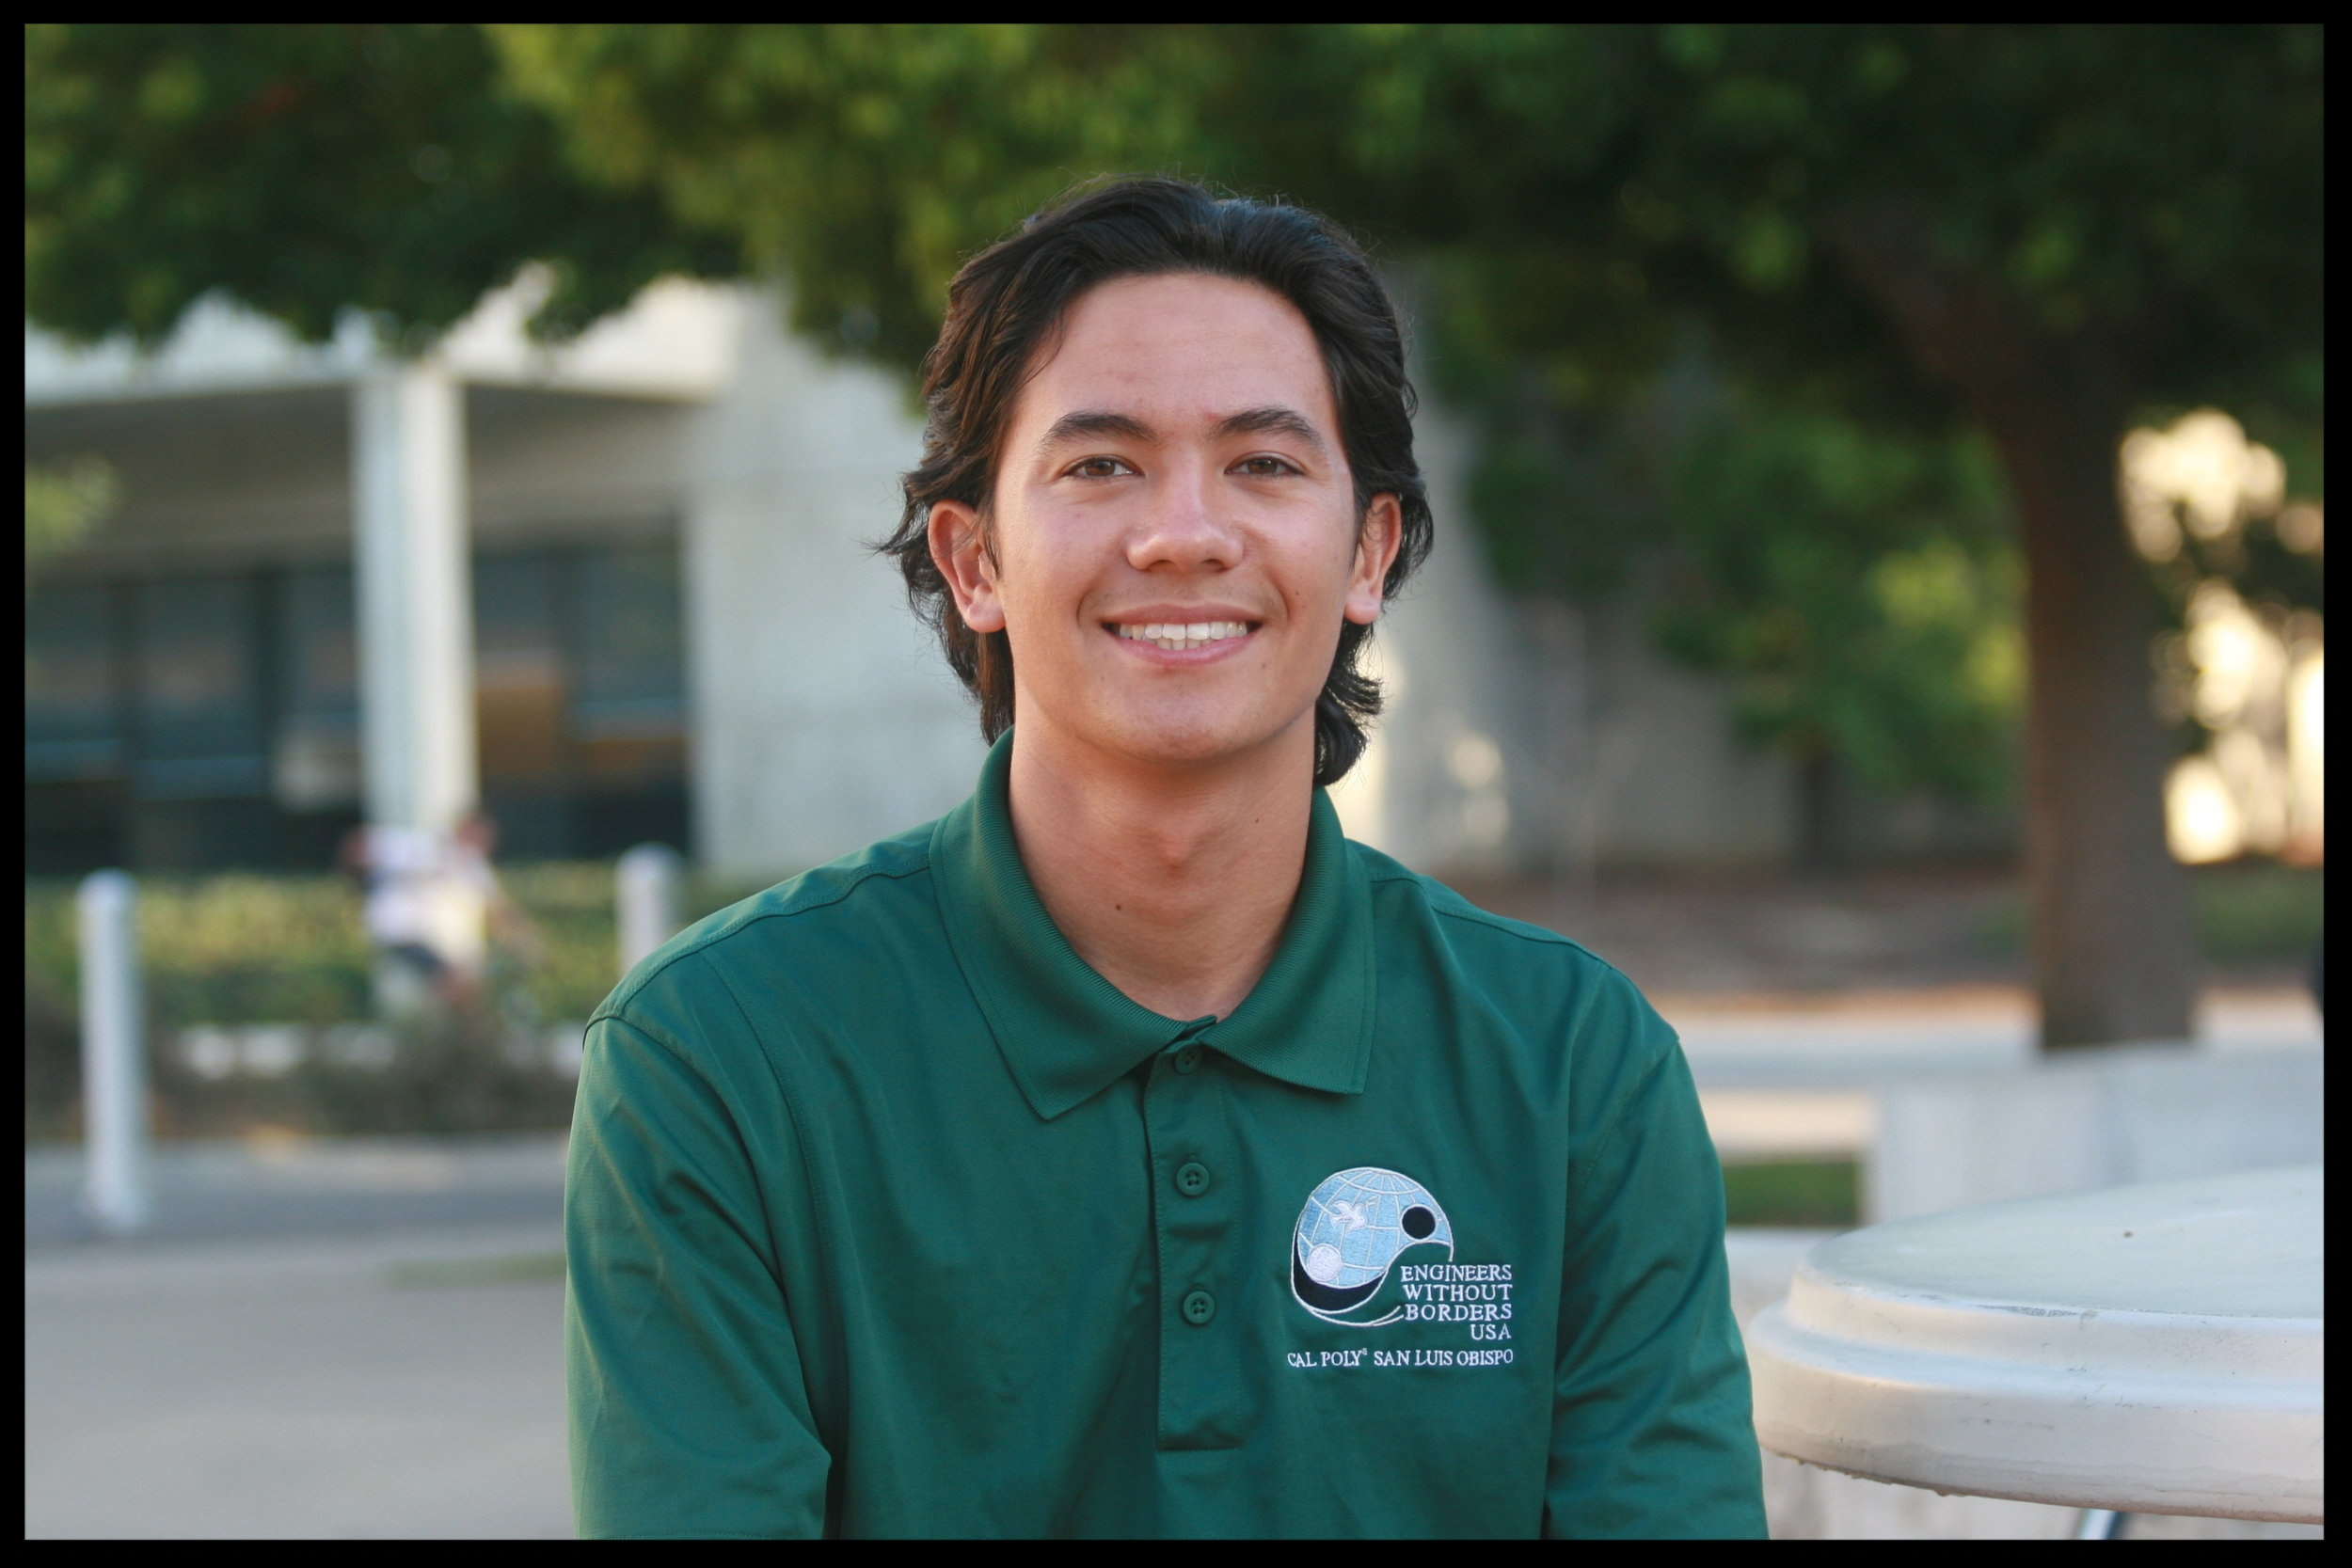 Tim Dinh - IMPACT Coordinator    Grad 2021 - Environmental Engineering   Tim is originally from Santa Clara, CA. He joined EWB because he wanted a way to have an impact on the world and help people in need during his time in college. Two of his favorite EWB memories are volunteering for the Meade Canine Rescue Center as a part of the annual IMPACT weekend last year and attending the officer camping trip. Outside of EWB, he enjoys surfing, going to concerts, and brewing his own yerba mate in his free time.